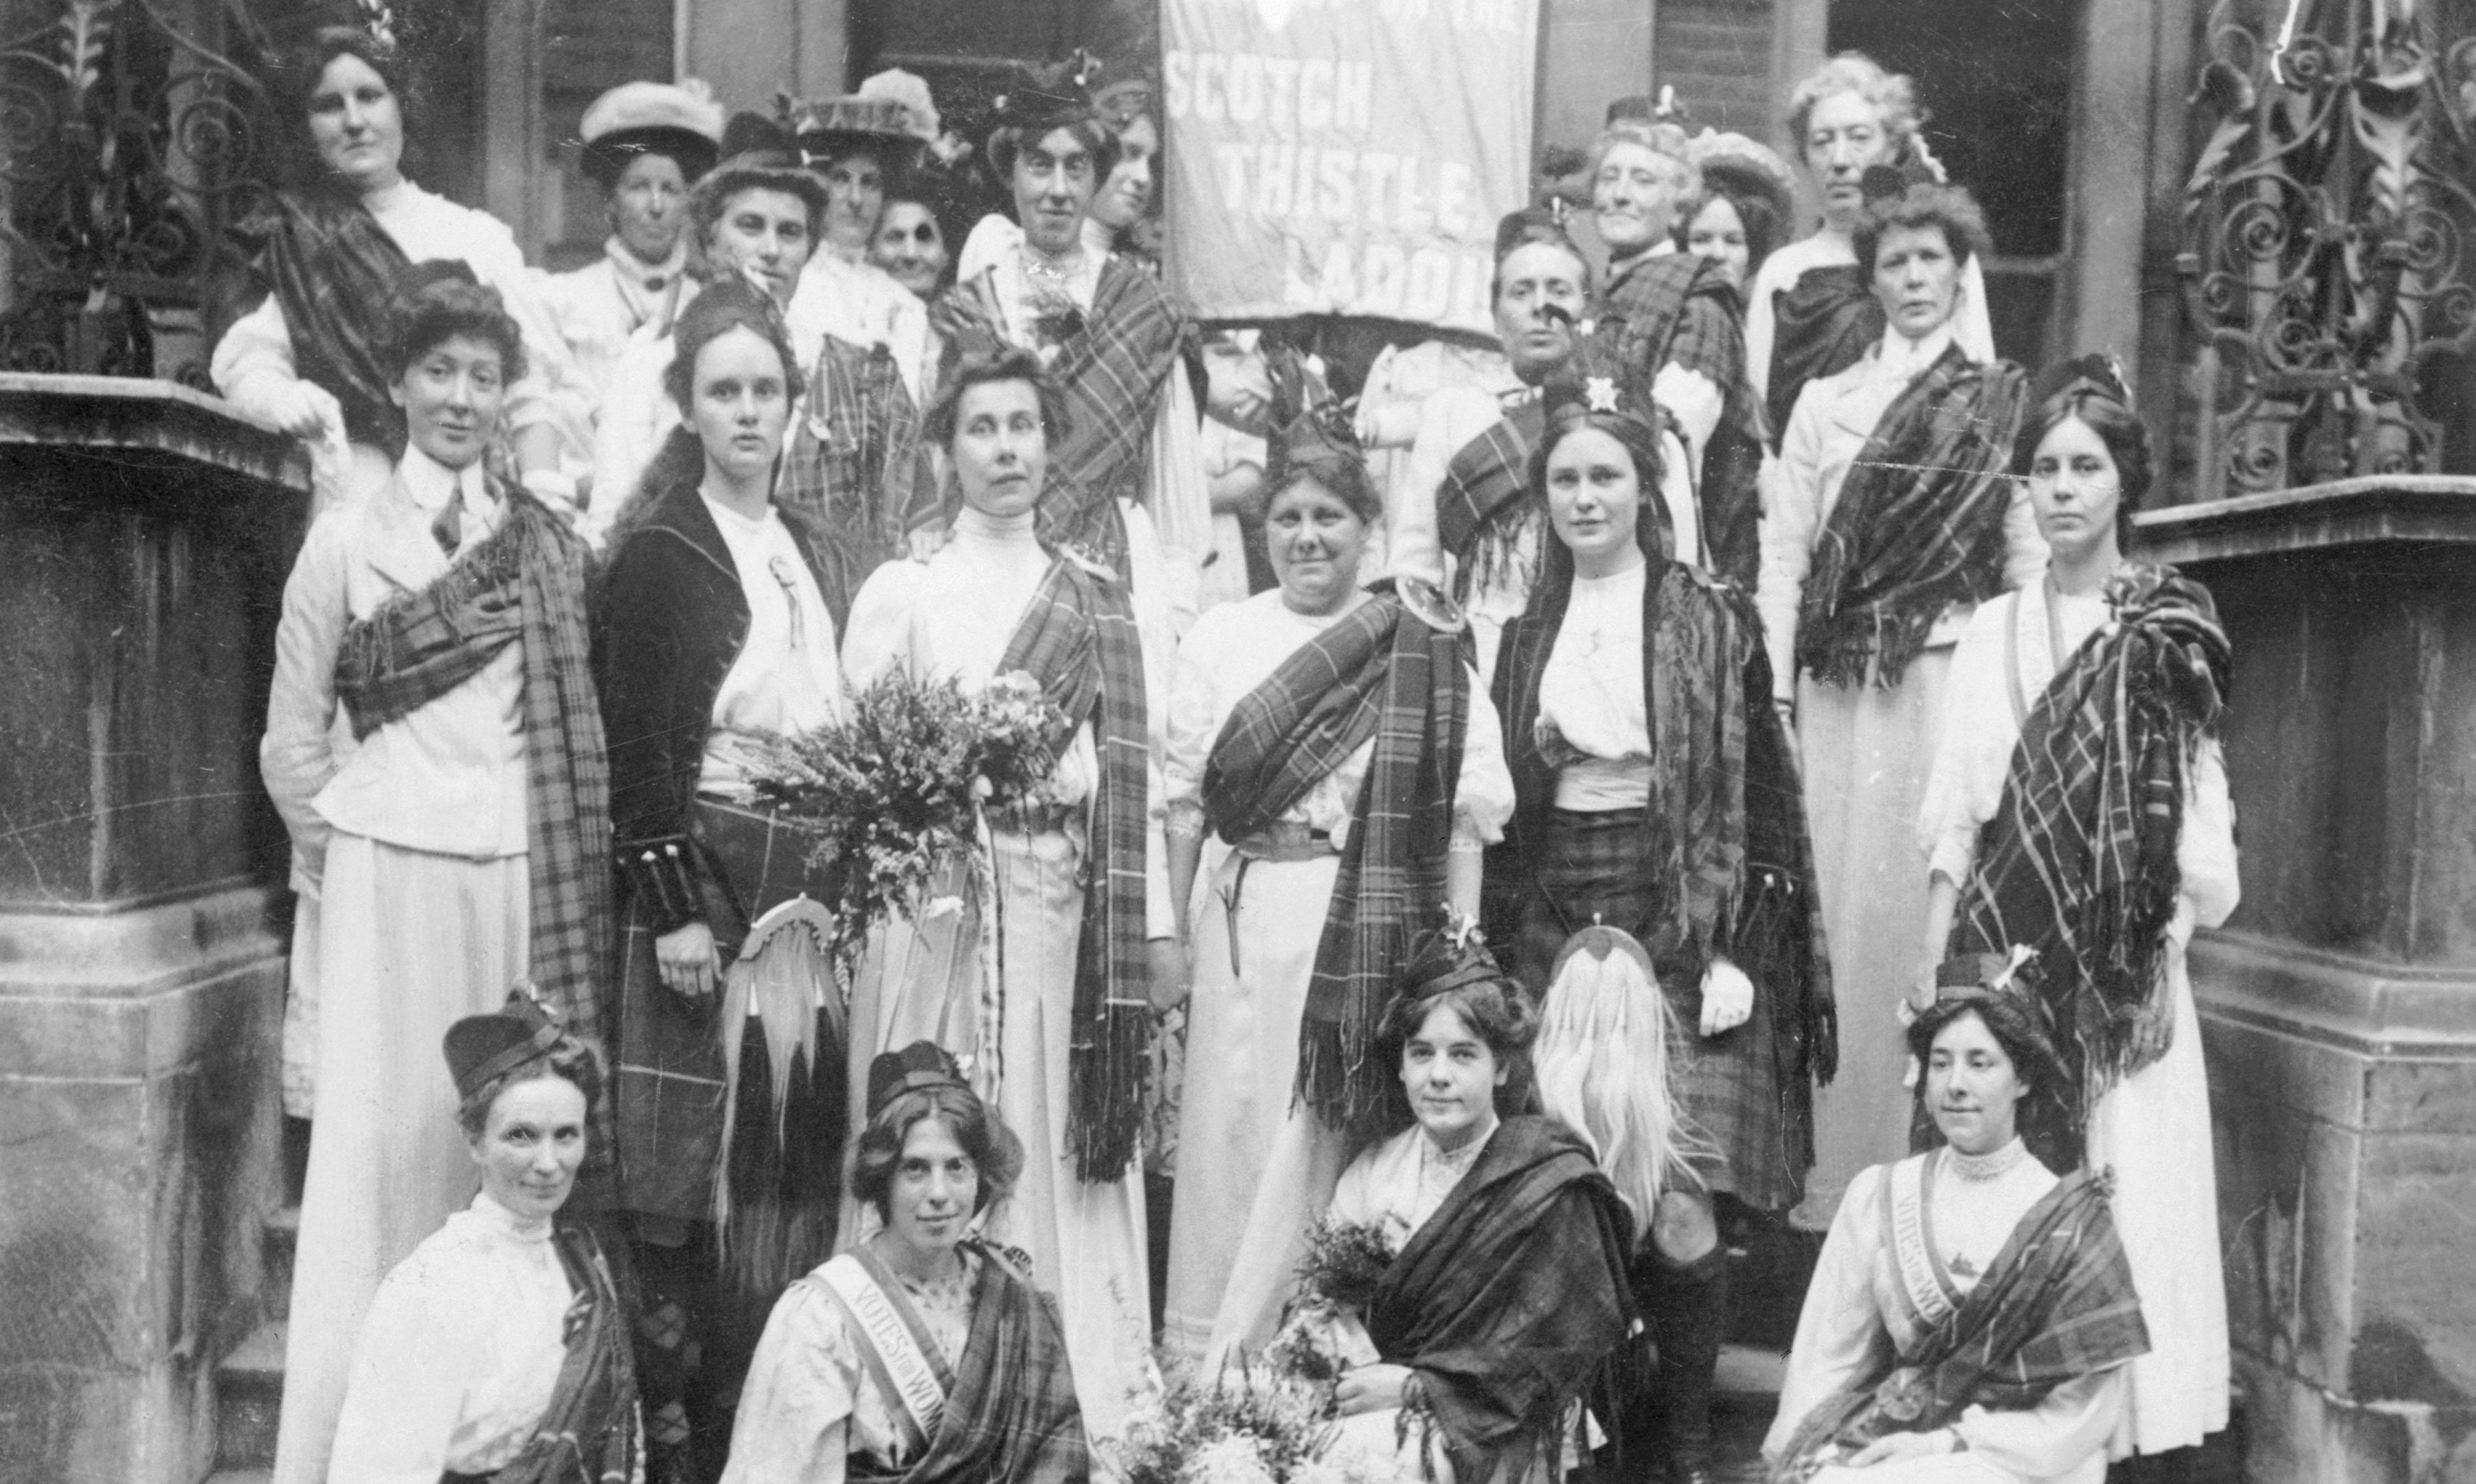 Scottish suffragettes welcome Mary Phillips, standing third from left, after she is freed from Holloway prison in London in August 1908 (Heritage Image Partnership Ltd)